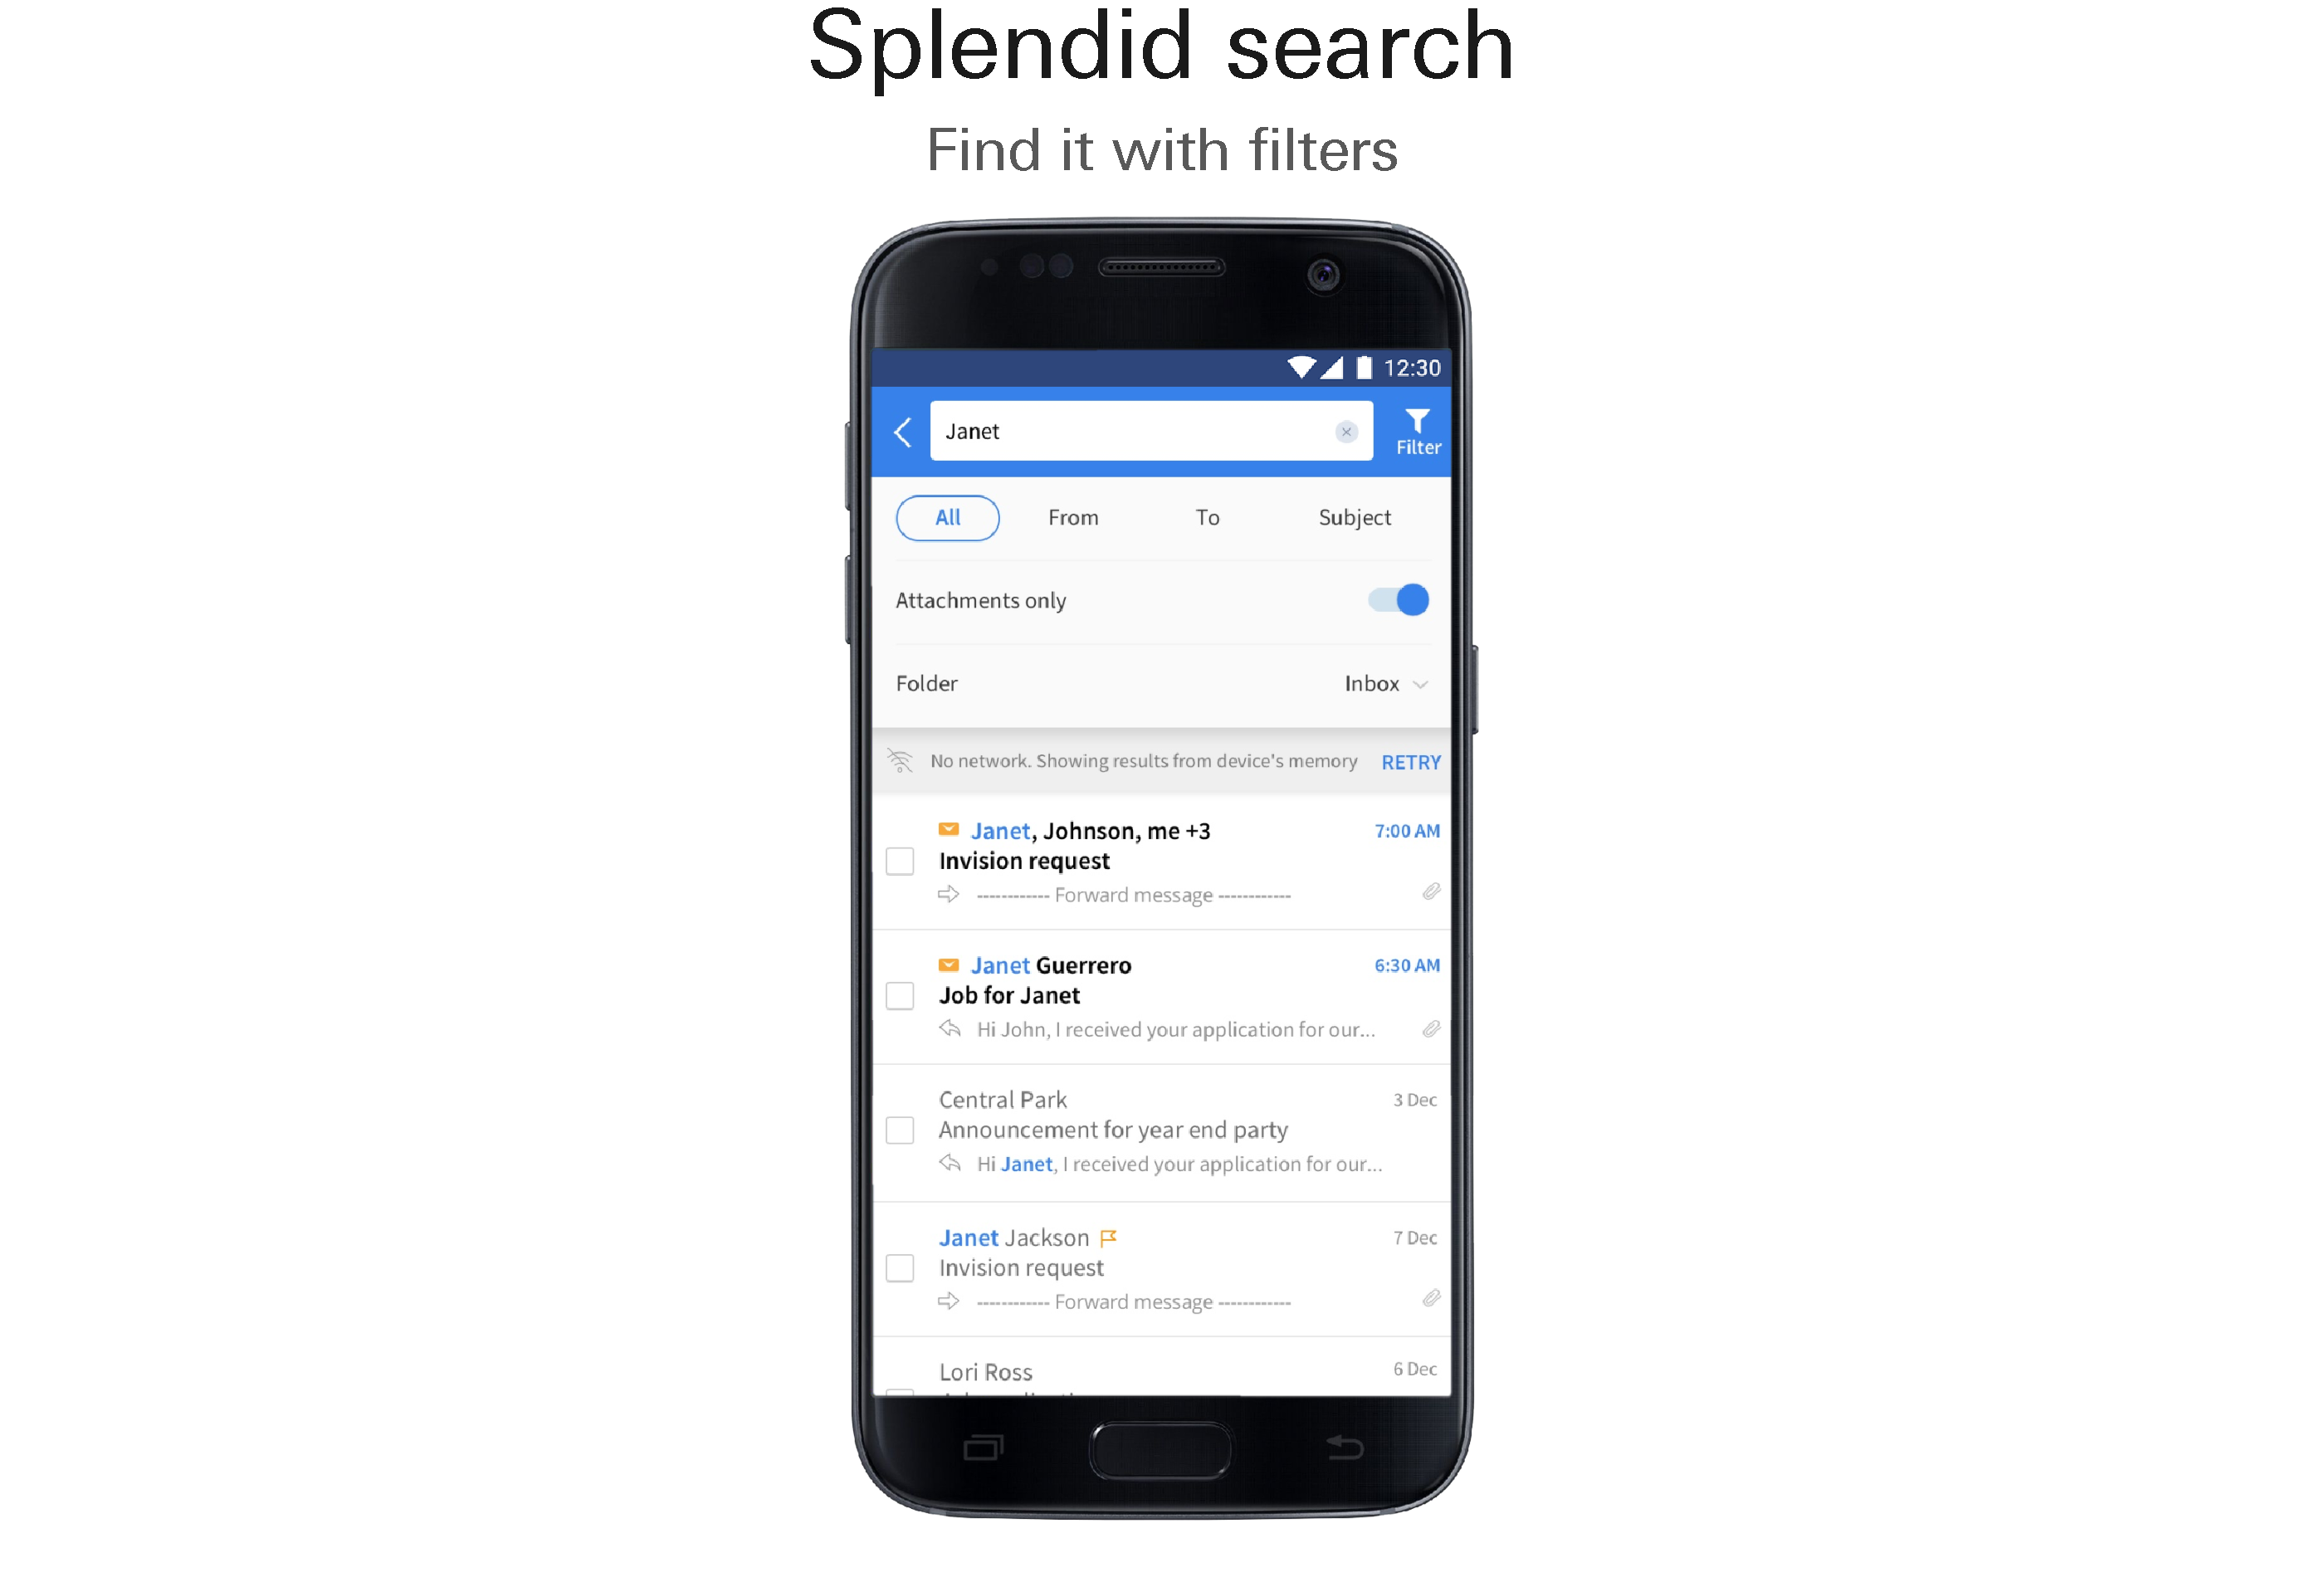 Splendid search